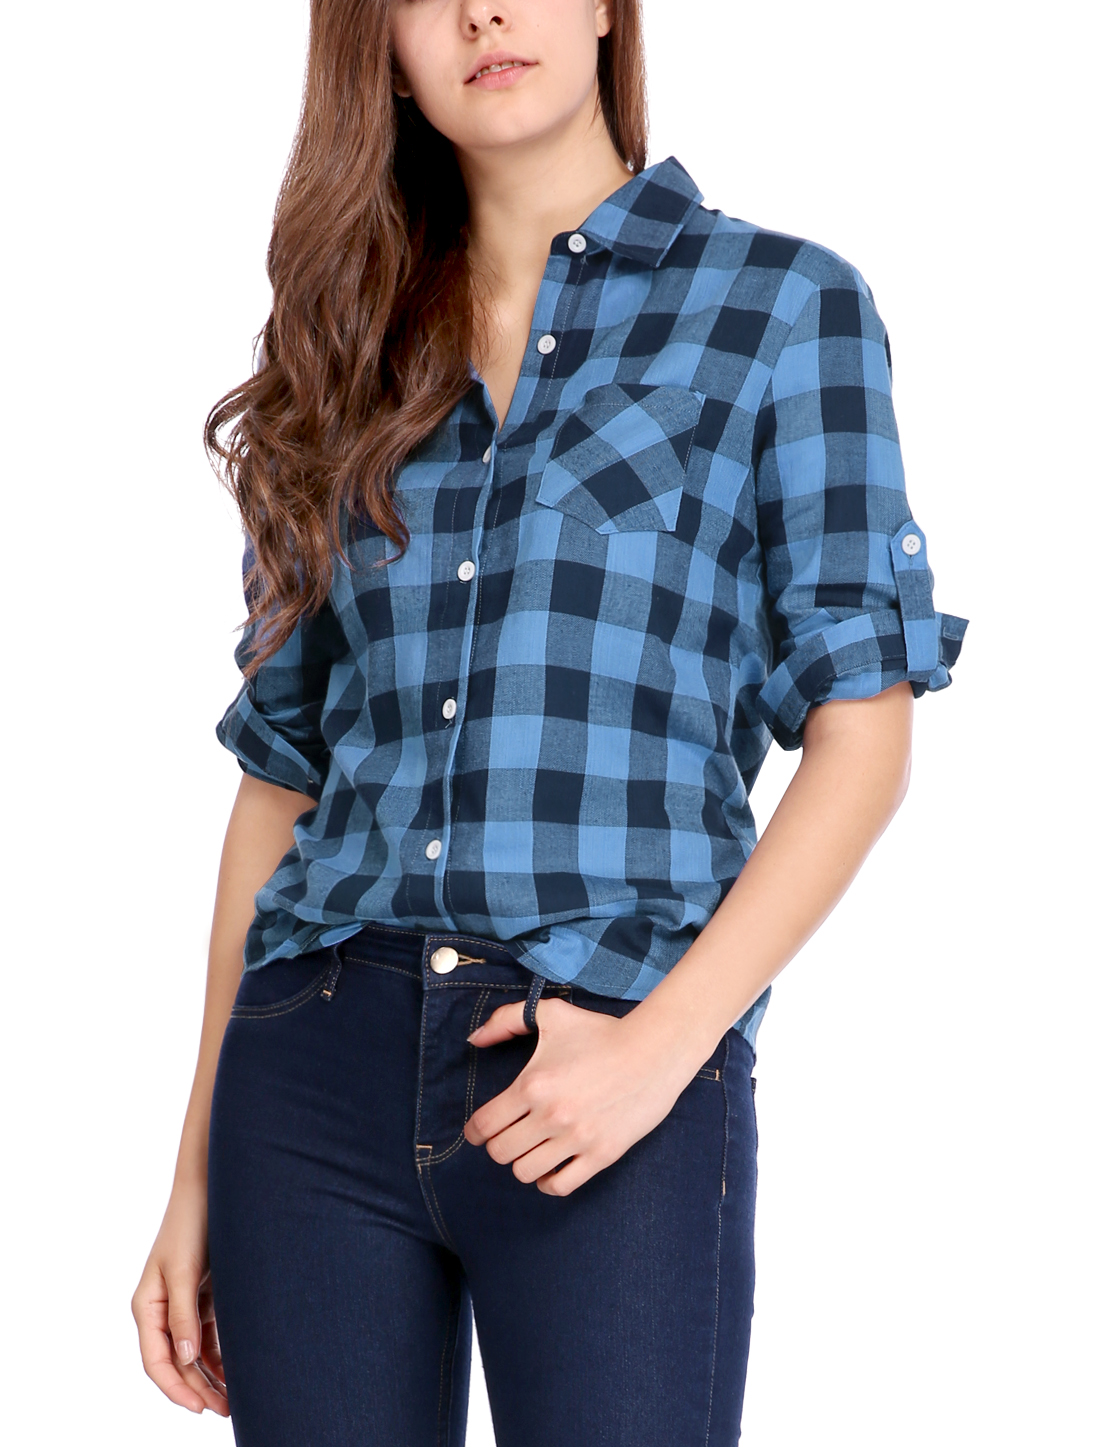 Ladies Roll Up Sleeves Boyfriend Plaid Shirt Black Blue XS